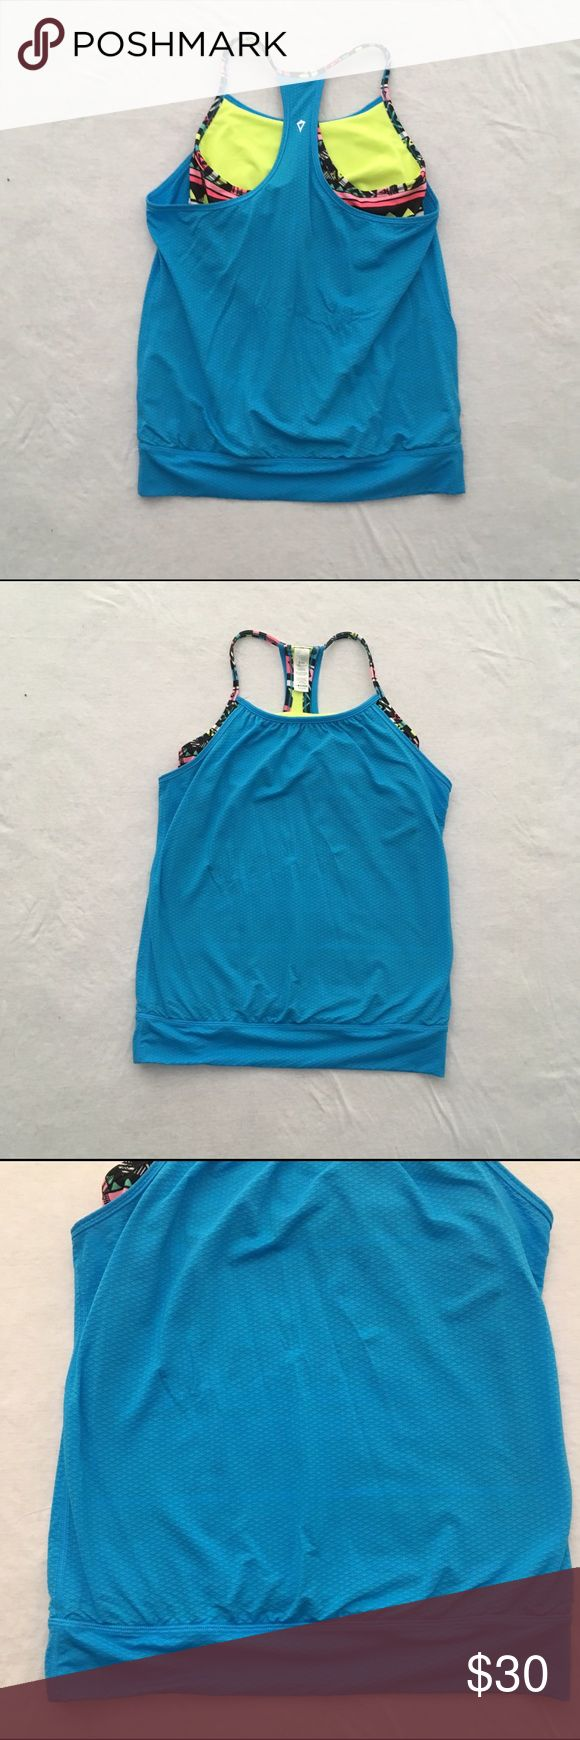 Ivivva Double Dutch Tank Double Dutch tank by Ivivva. Exposed sports bra attached to the tank. Sports bra has spots for removal cups (not included). Great condition. No rips or stains.  Measurements (approximate, taken laying flat): Length: 22.5 inches  Material: Body: 89% nylon 11% Lycra spandex Contrast: 94% polyester 6% Lycra spandex Lining: 56% polyester, 33% coolmax polyester, 11% Lycra spandex Exclusive of trim  ❌No trades❌ Ivivva Shirts & Tops Tank Tops